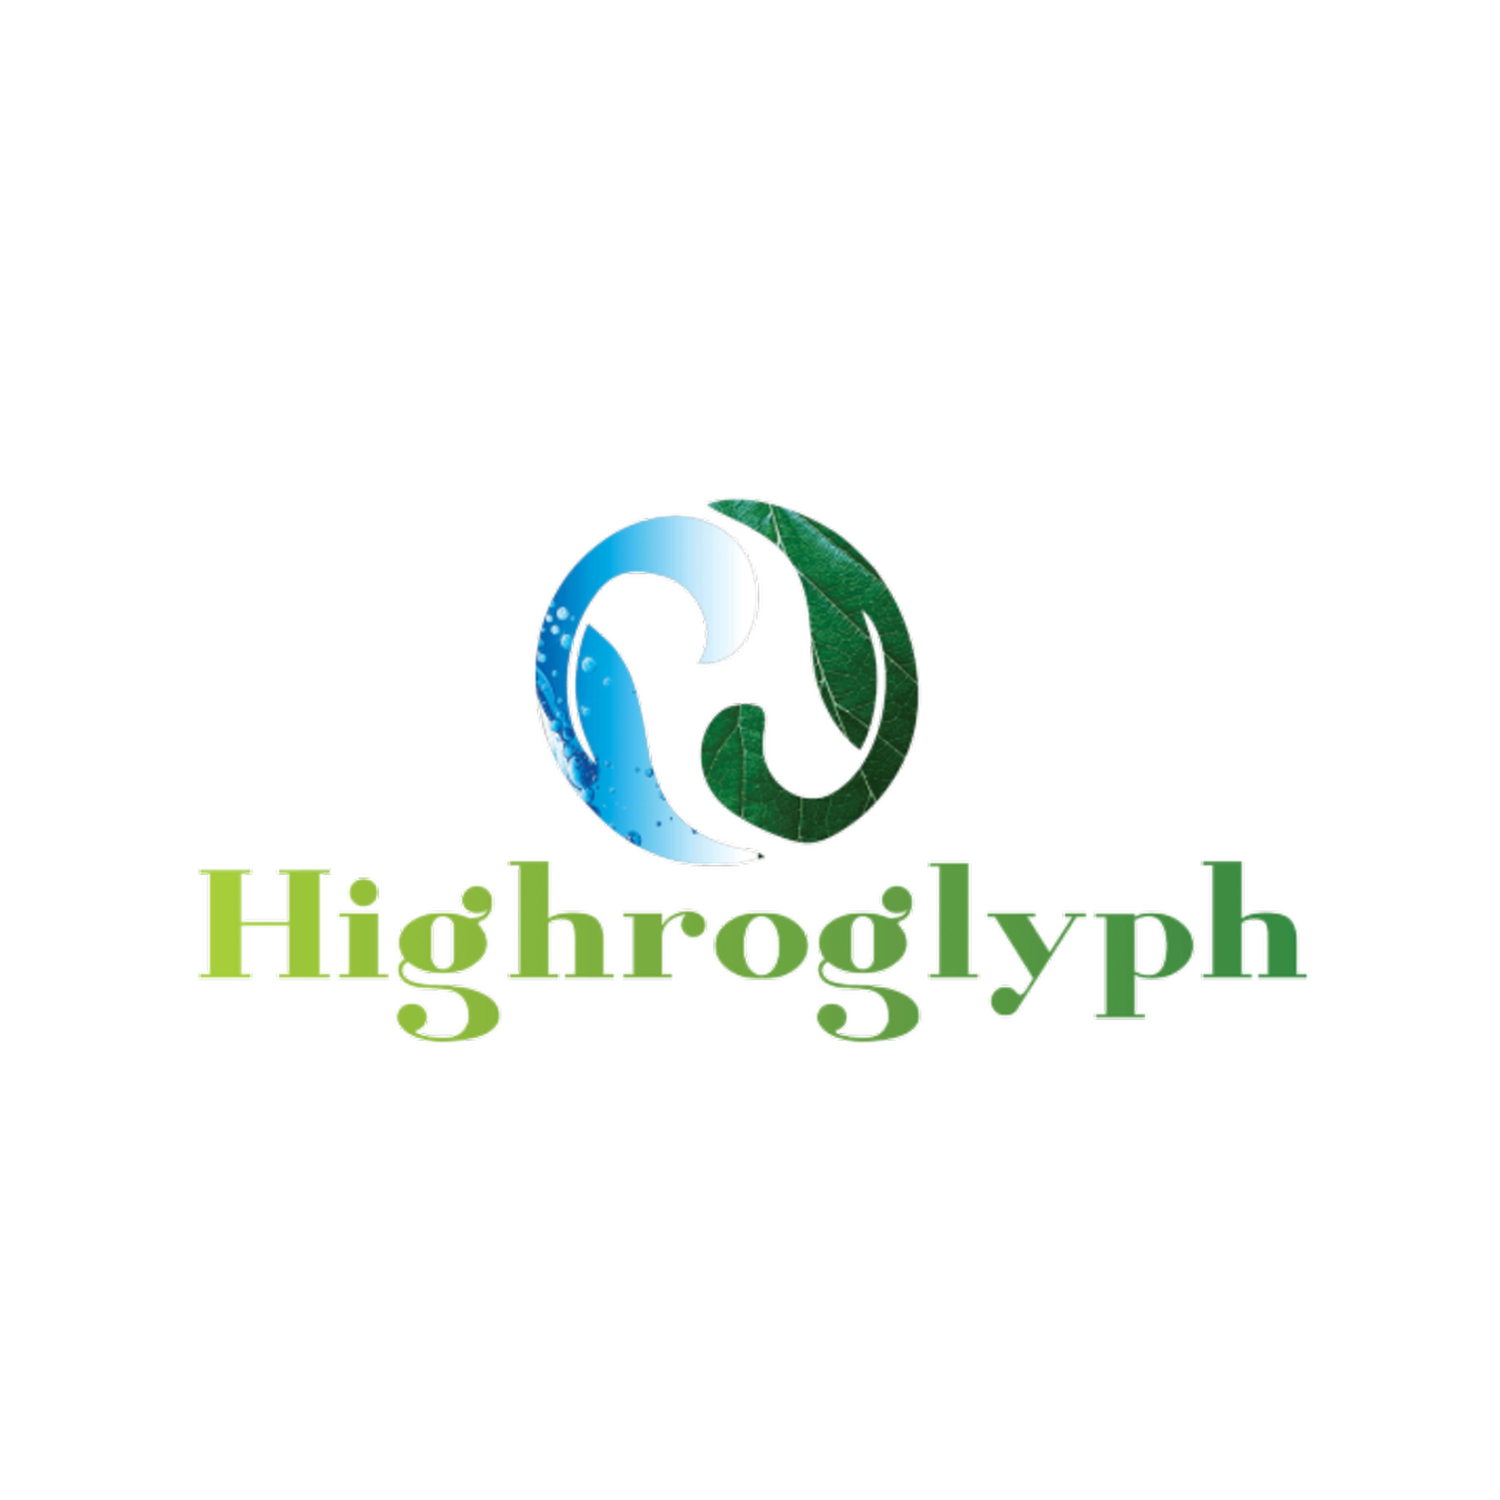 Highroglyph